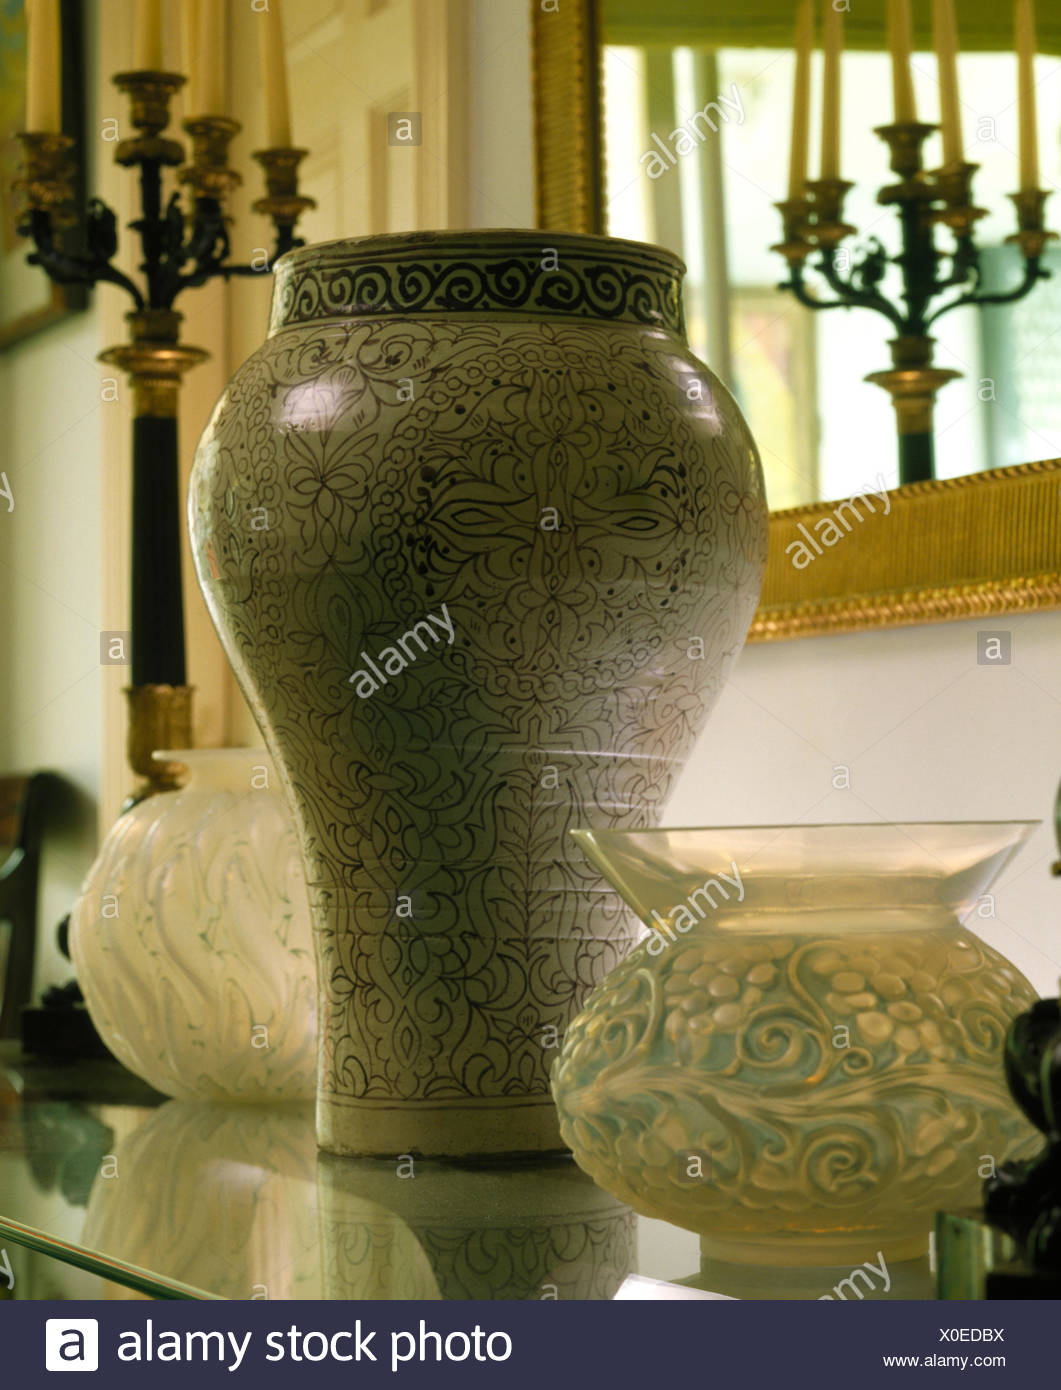 Tall ceramic pot with Art Nouveau glass vases - Stock Image